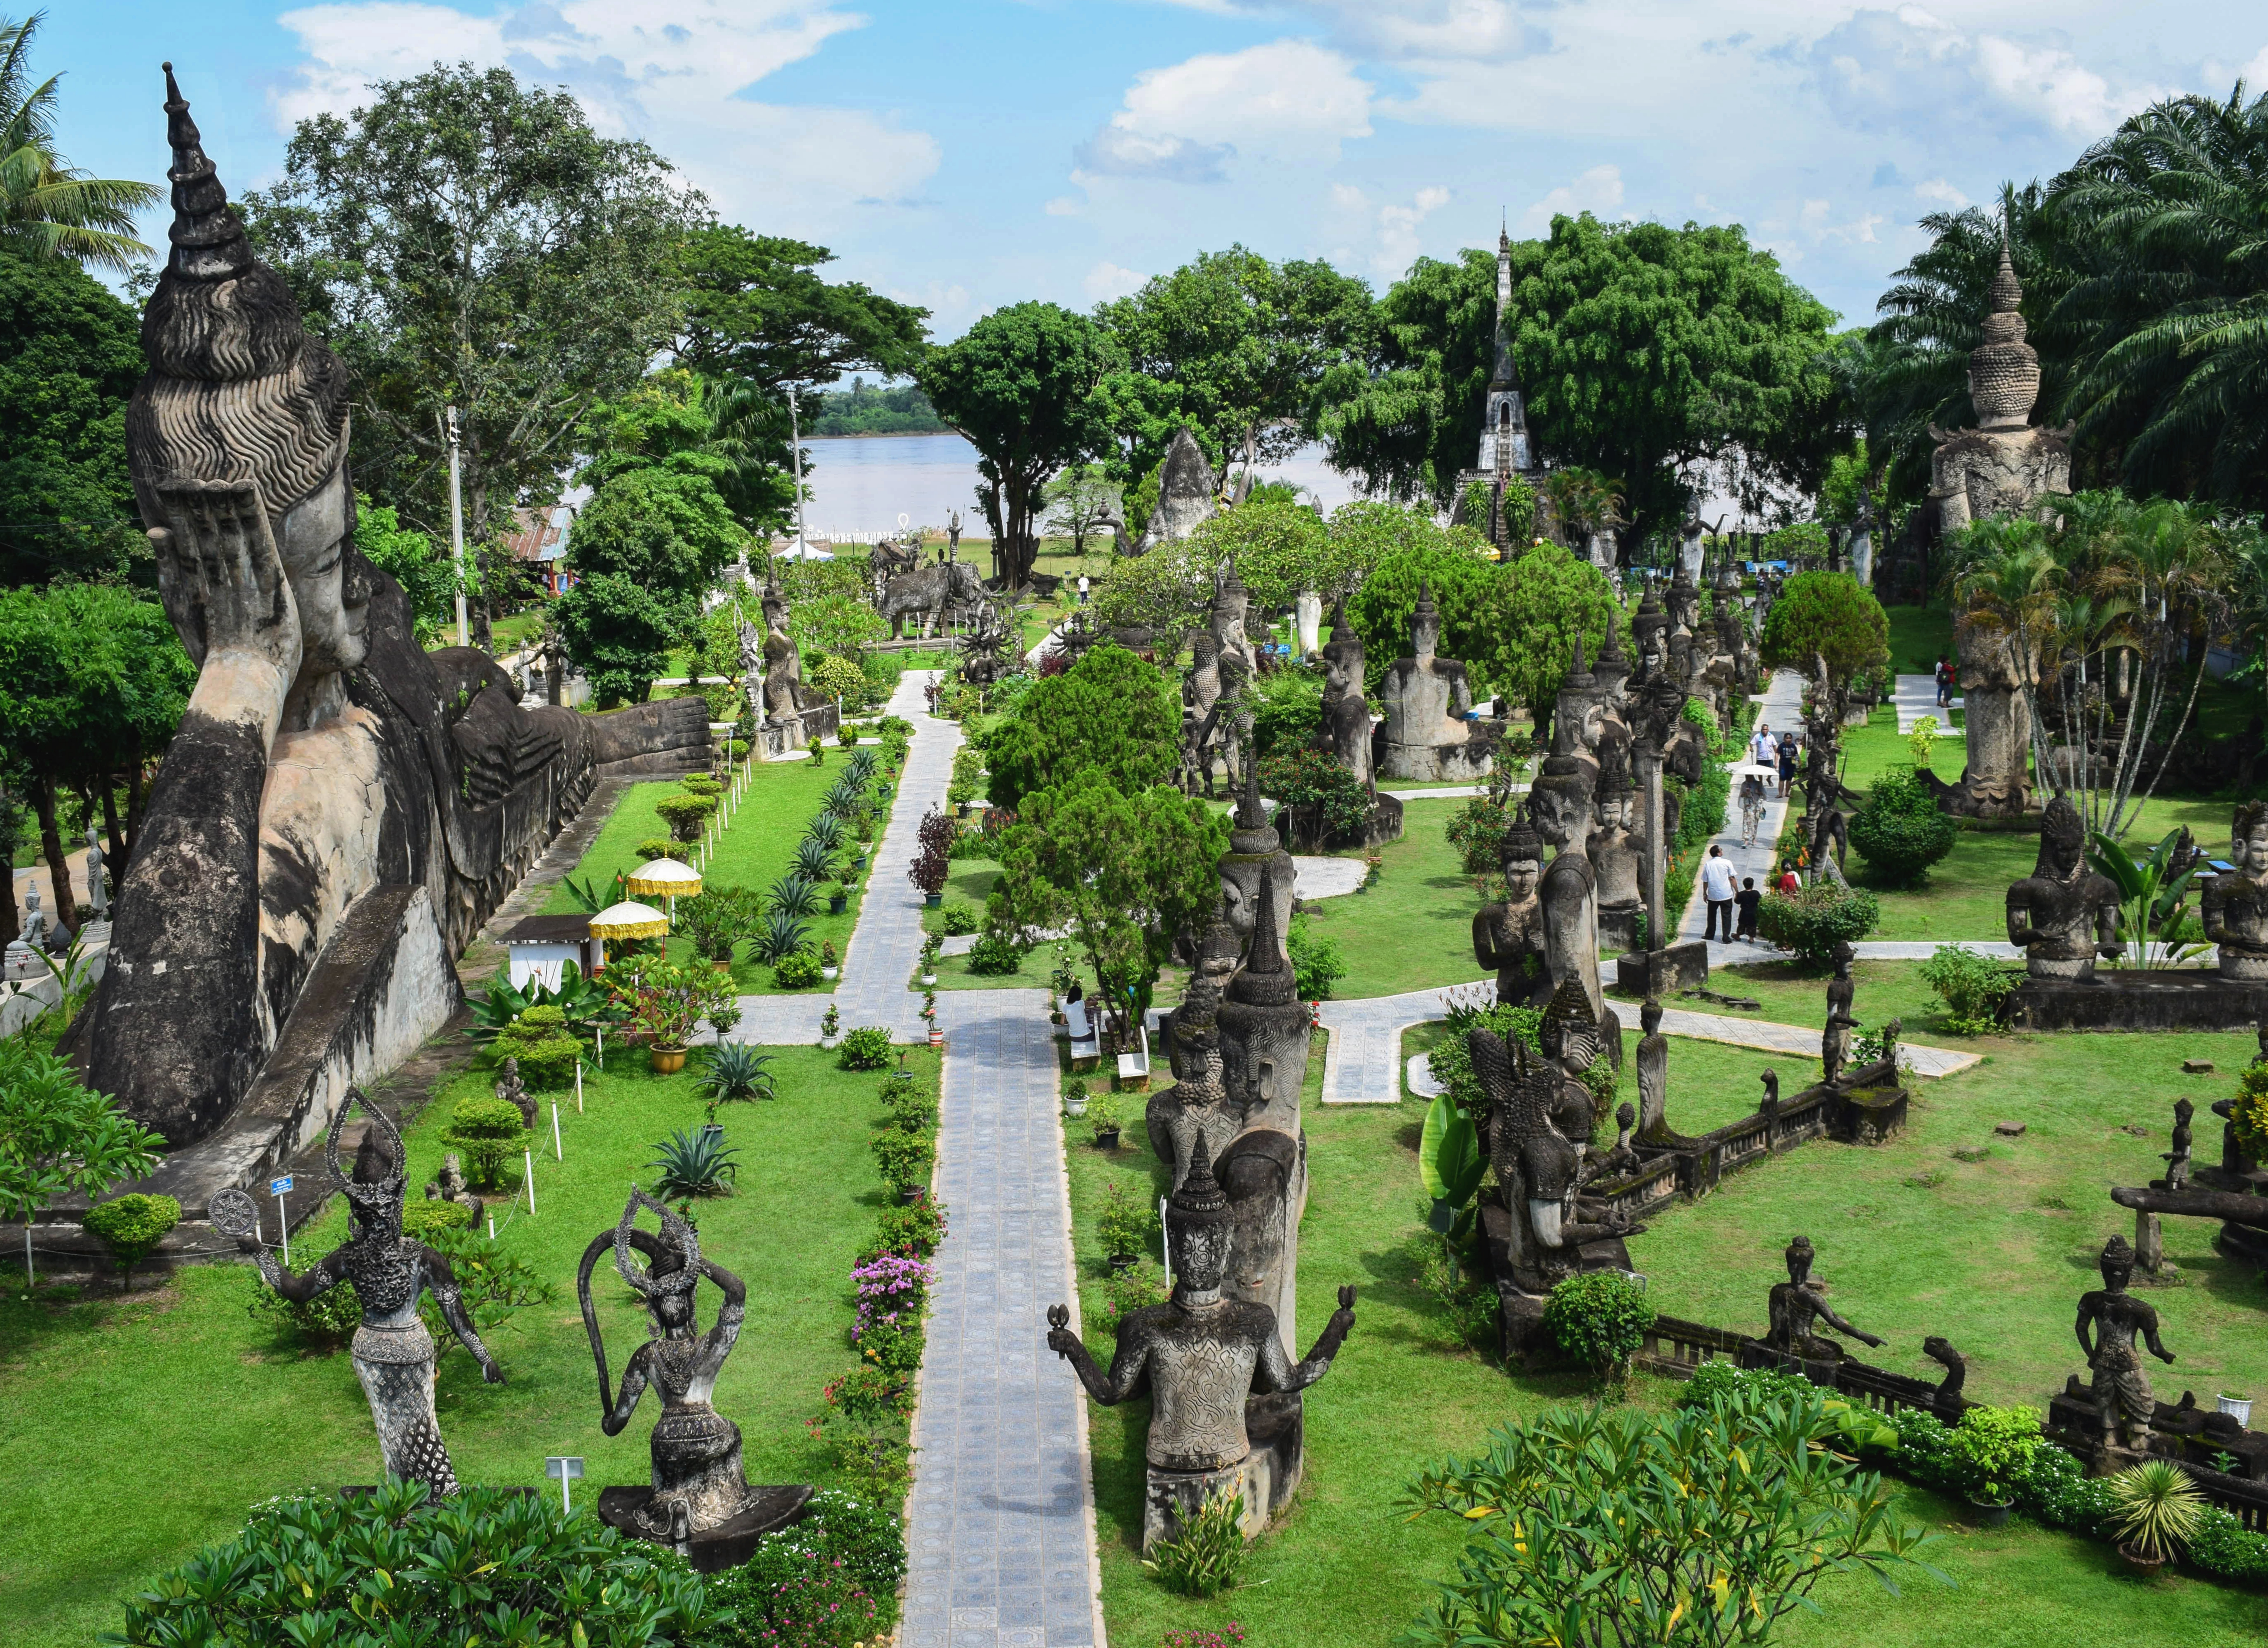 Visiting Buddha Park in Vientiane Laos by public bus